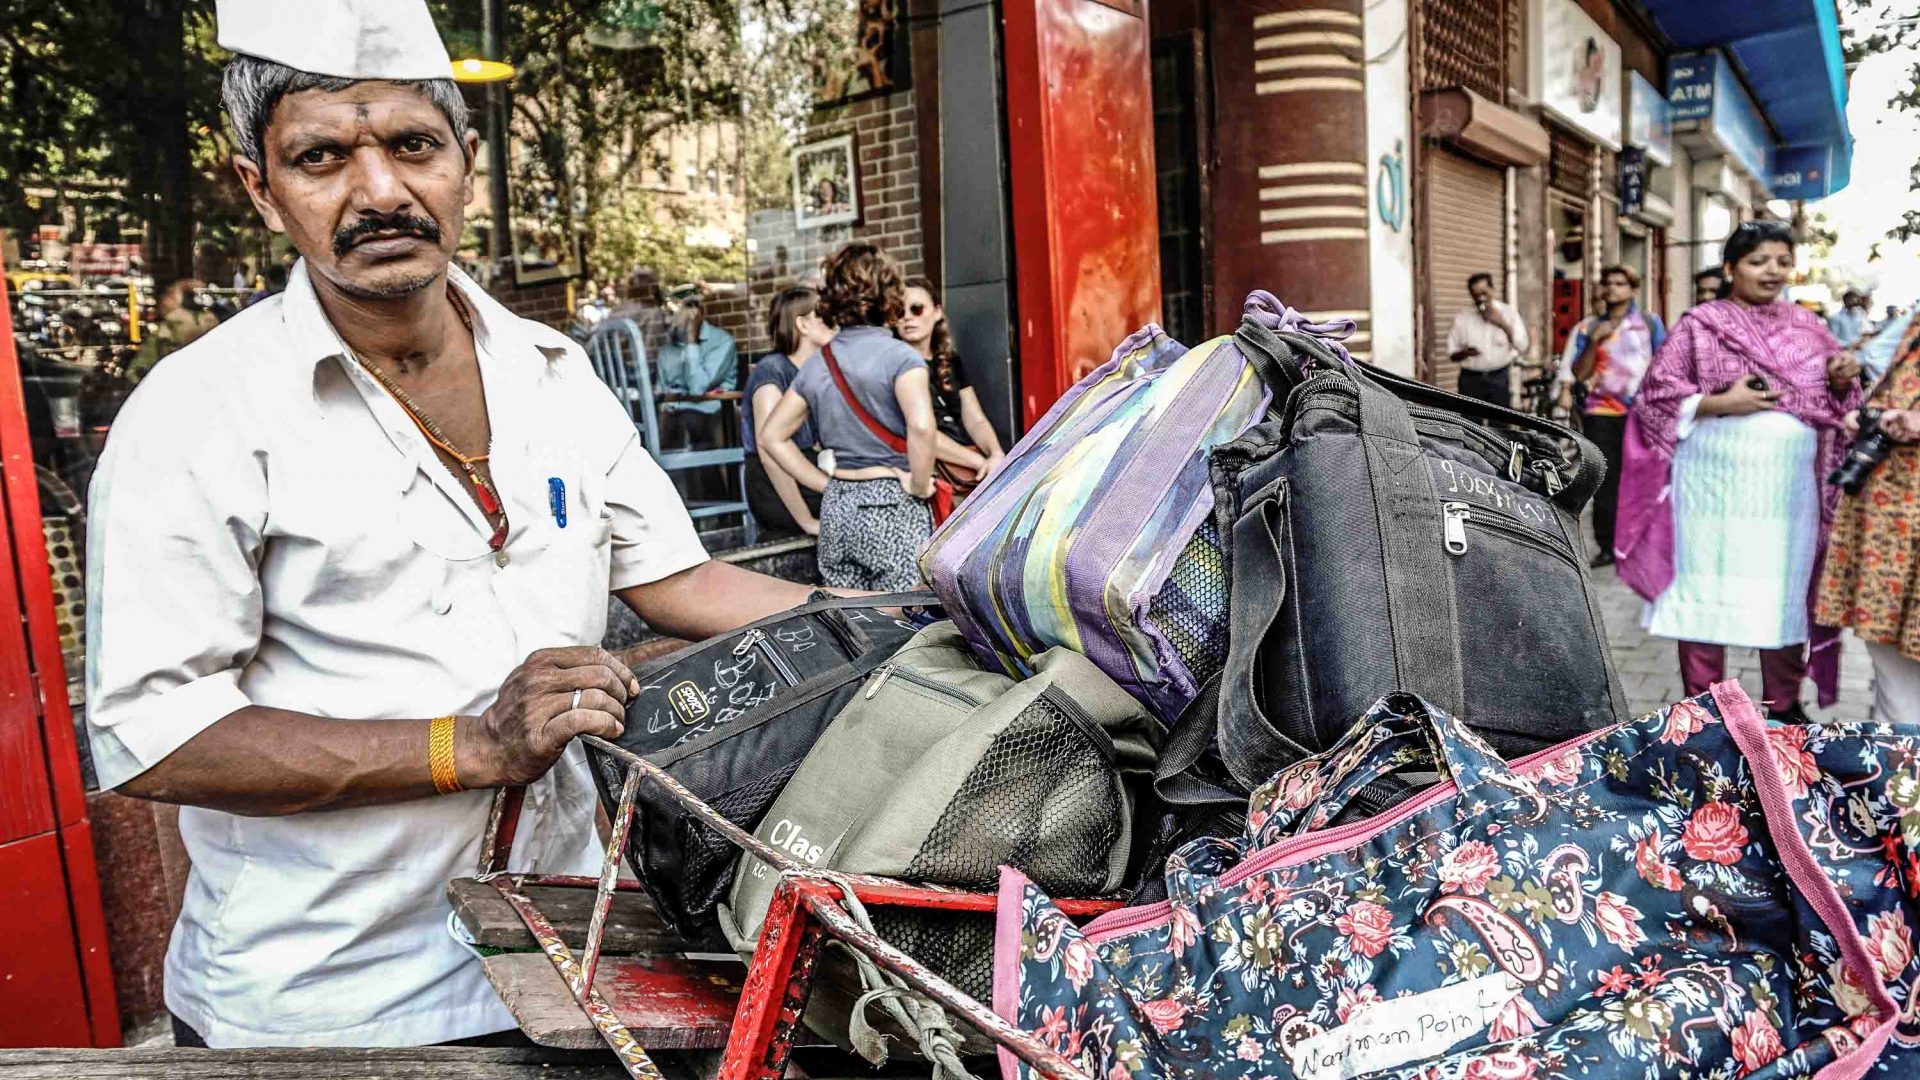 A dabbawala pushes his lunch load through Churchgate after getting off the train.